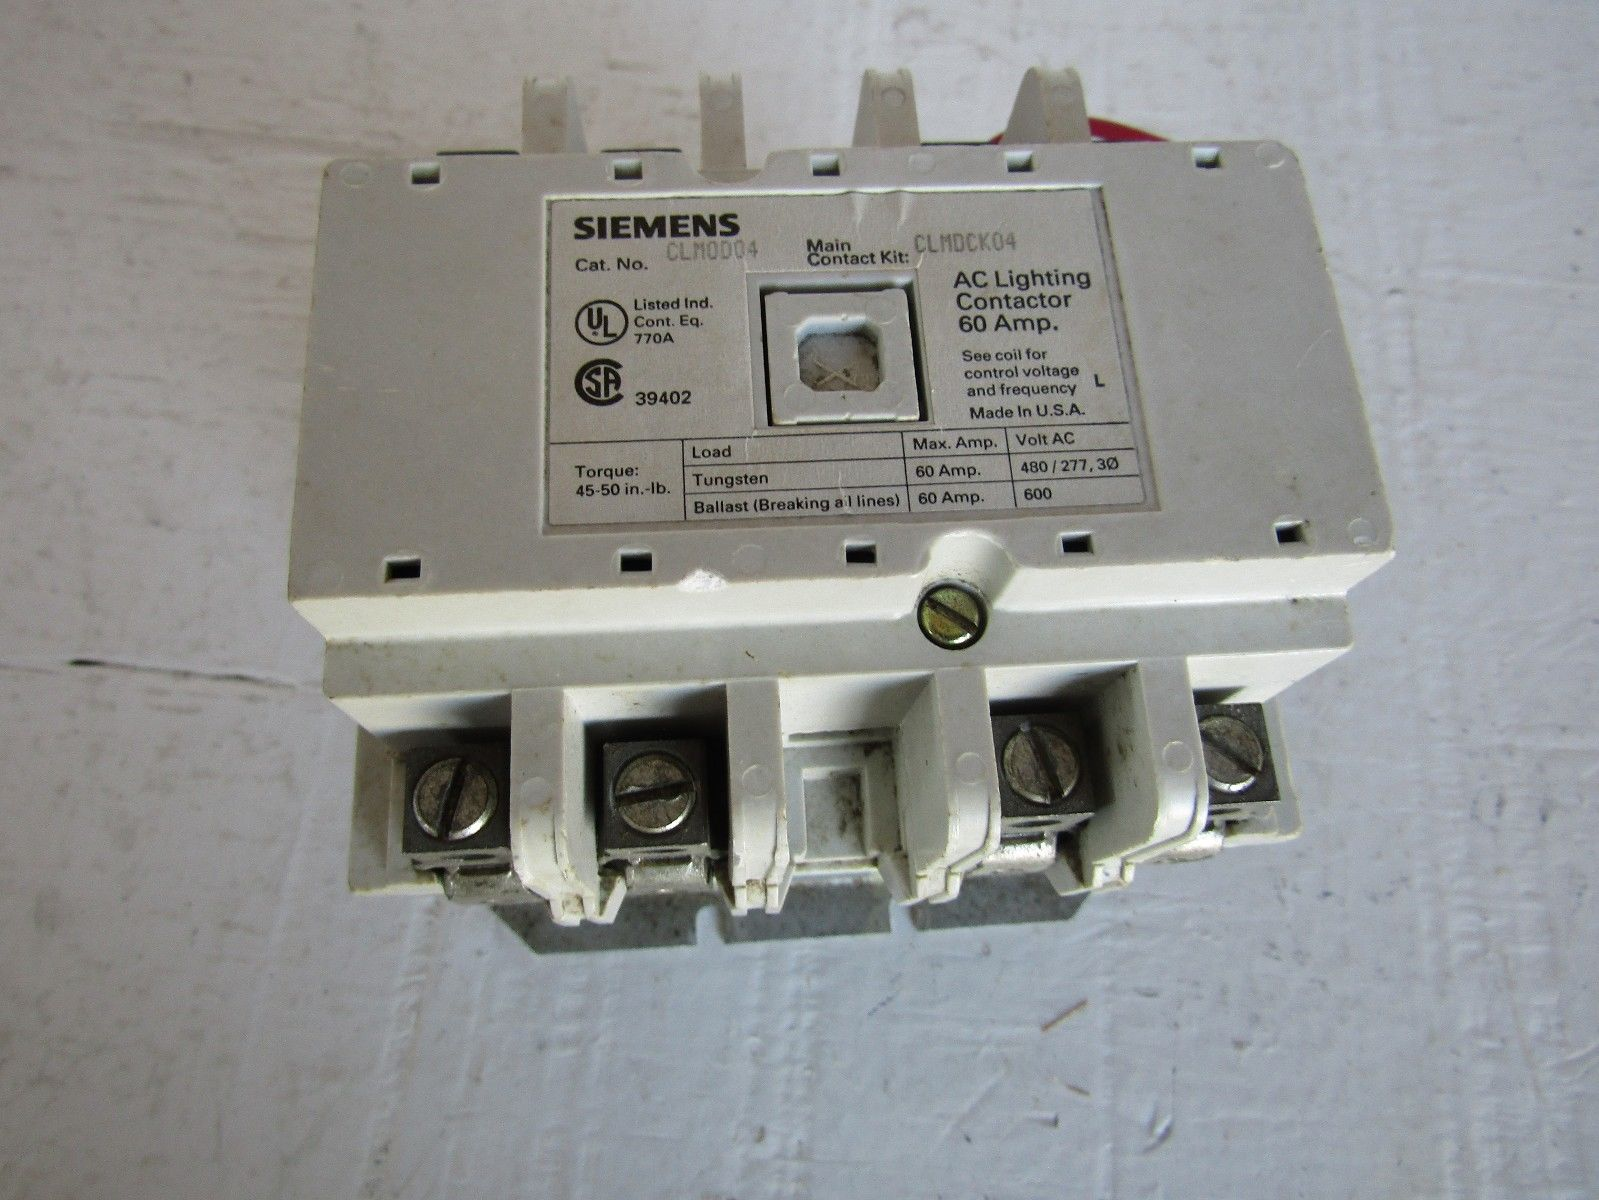 120v coil contactor wiring diagram generator coil wiring diagram wiring diagram new siemens clm0d04 4 pole 60a lighting and heating contactor 120v coil 232036314545 4fit cheapraybanclubmaster Gallery